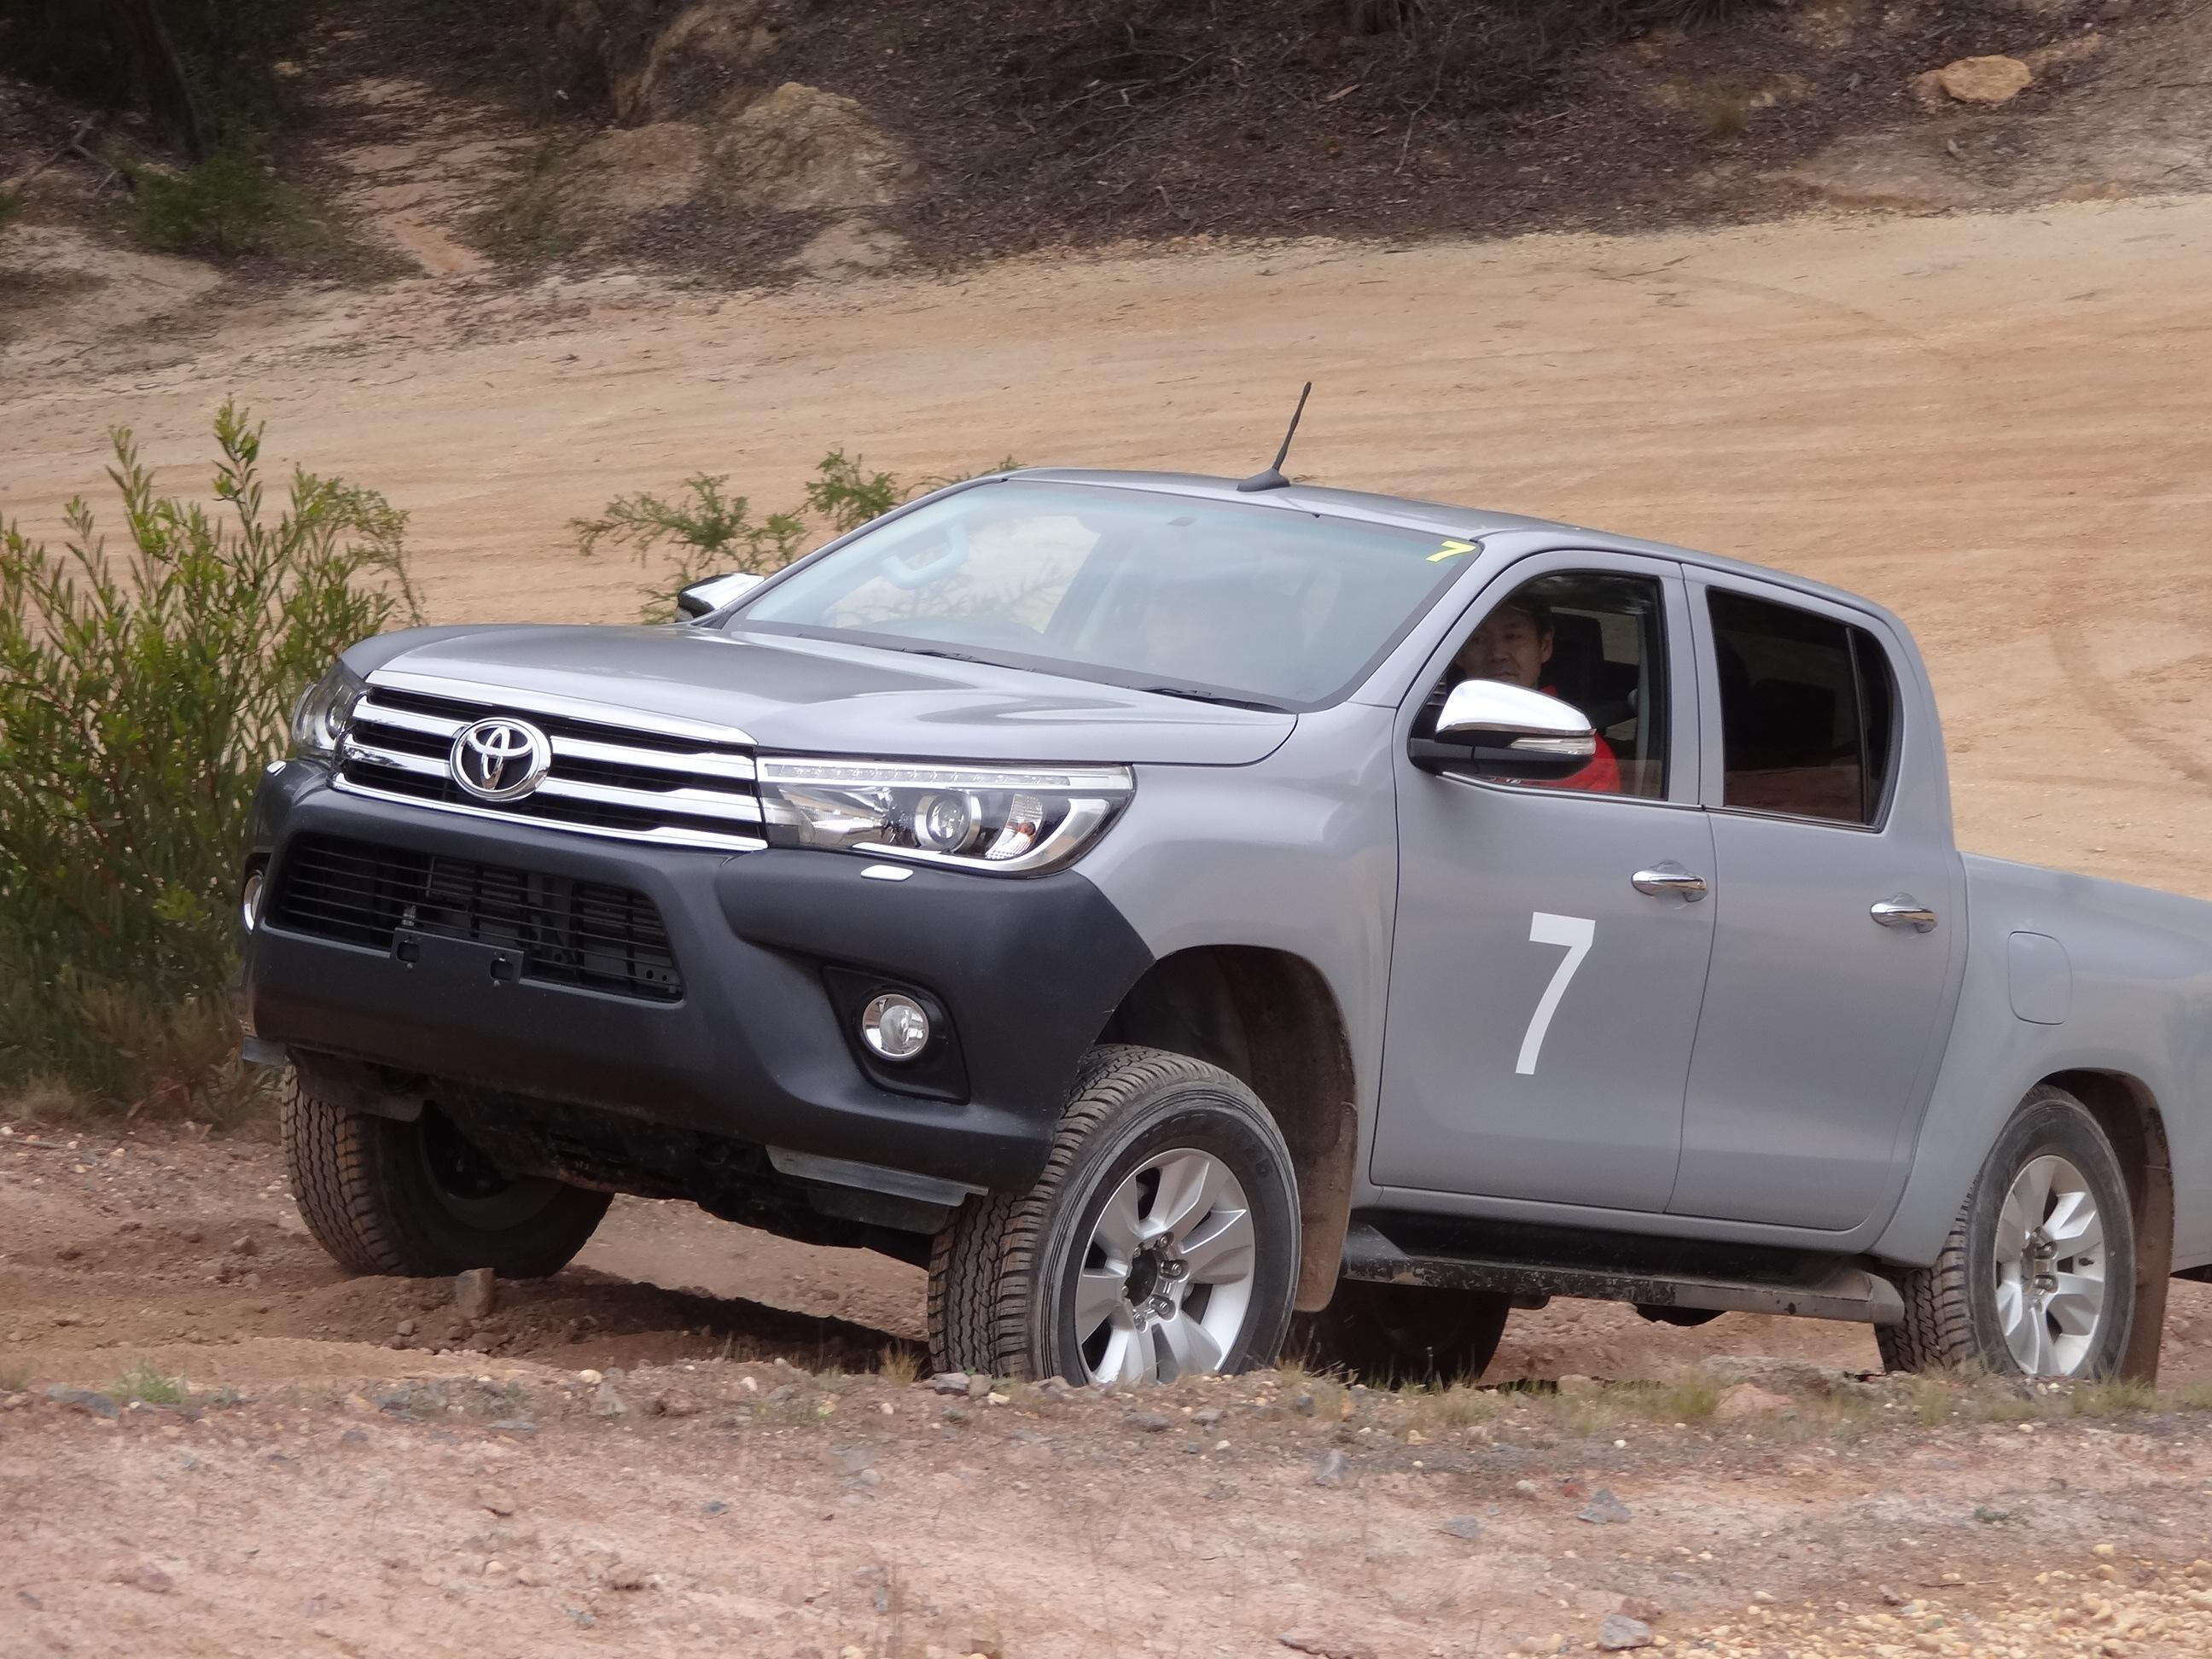 2016 Toyota Hilux Unleashed: Favored By Militants, World's